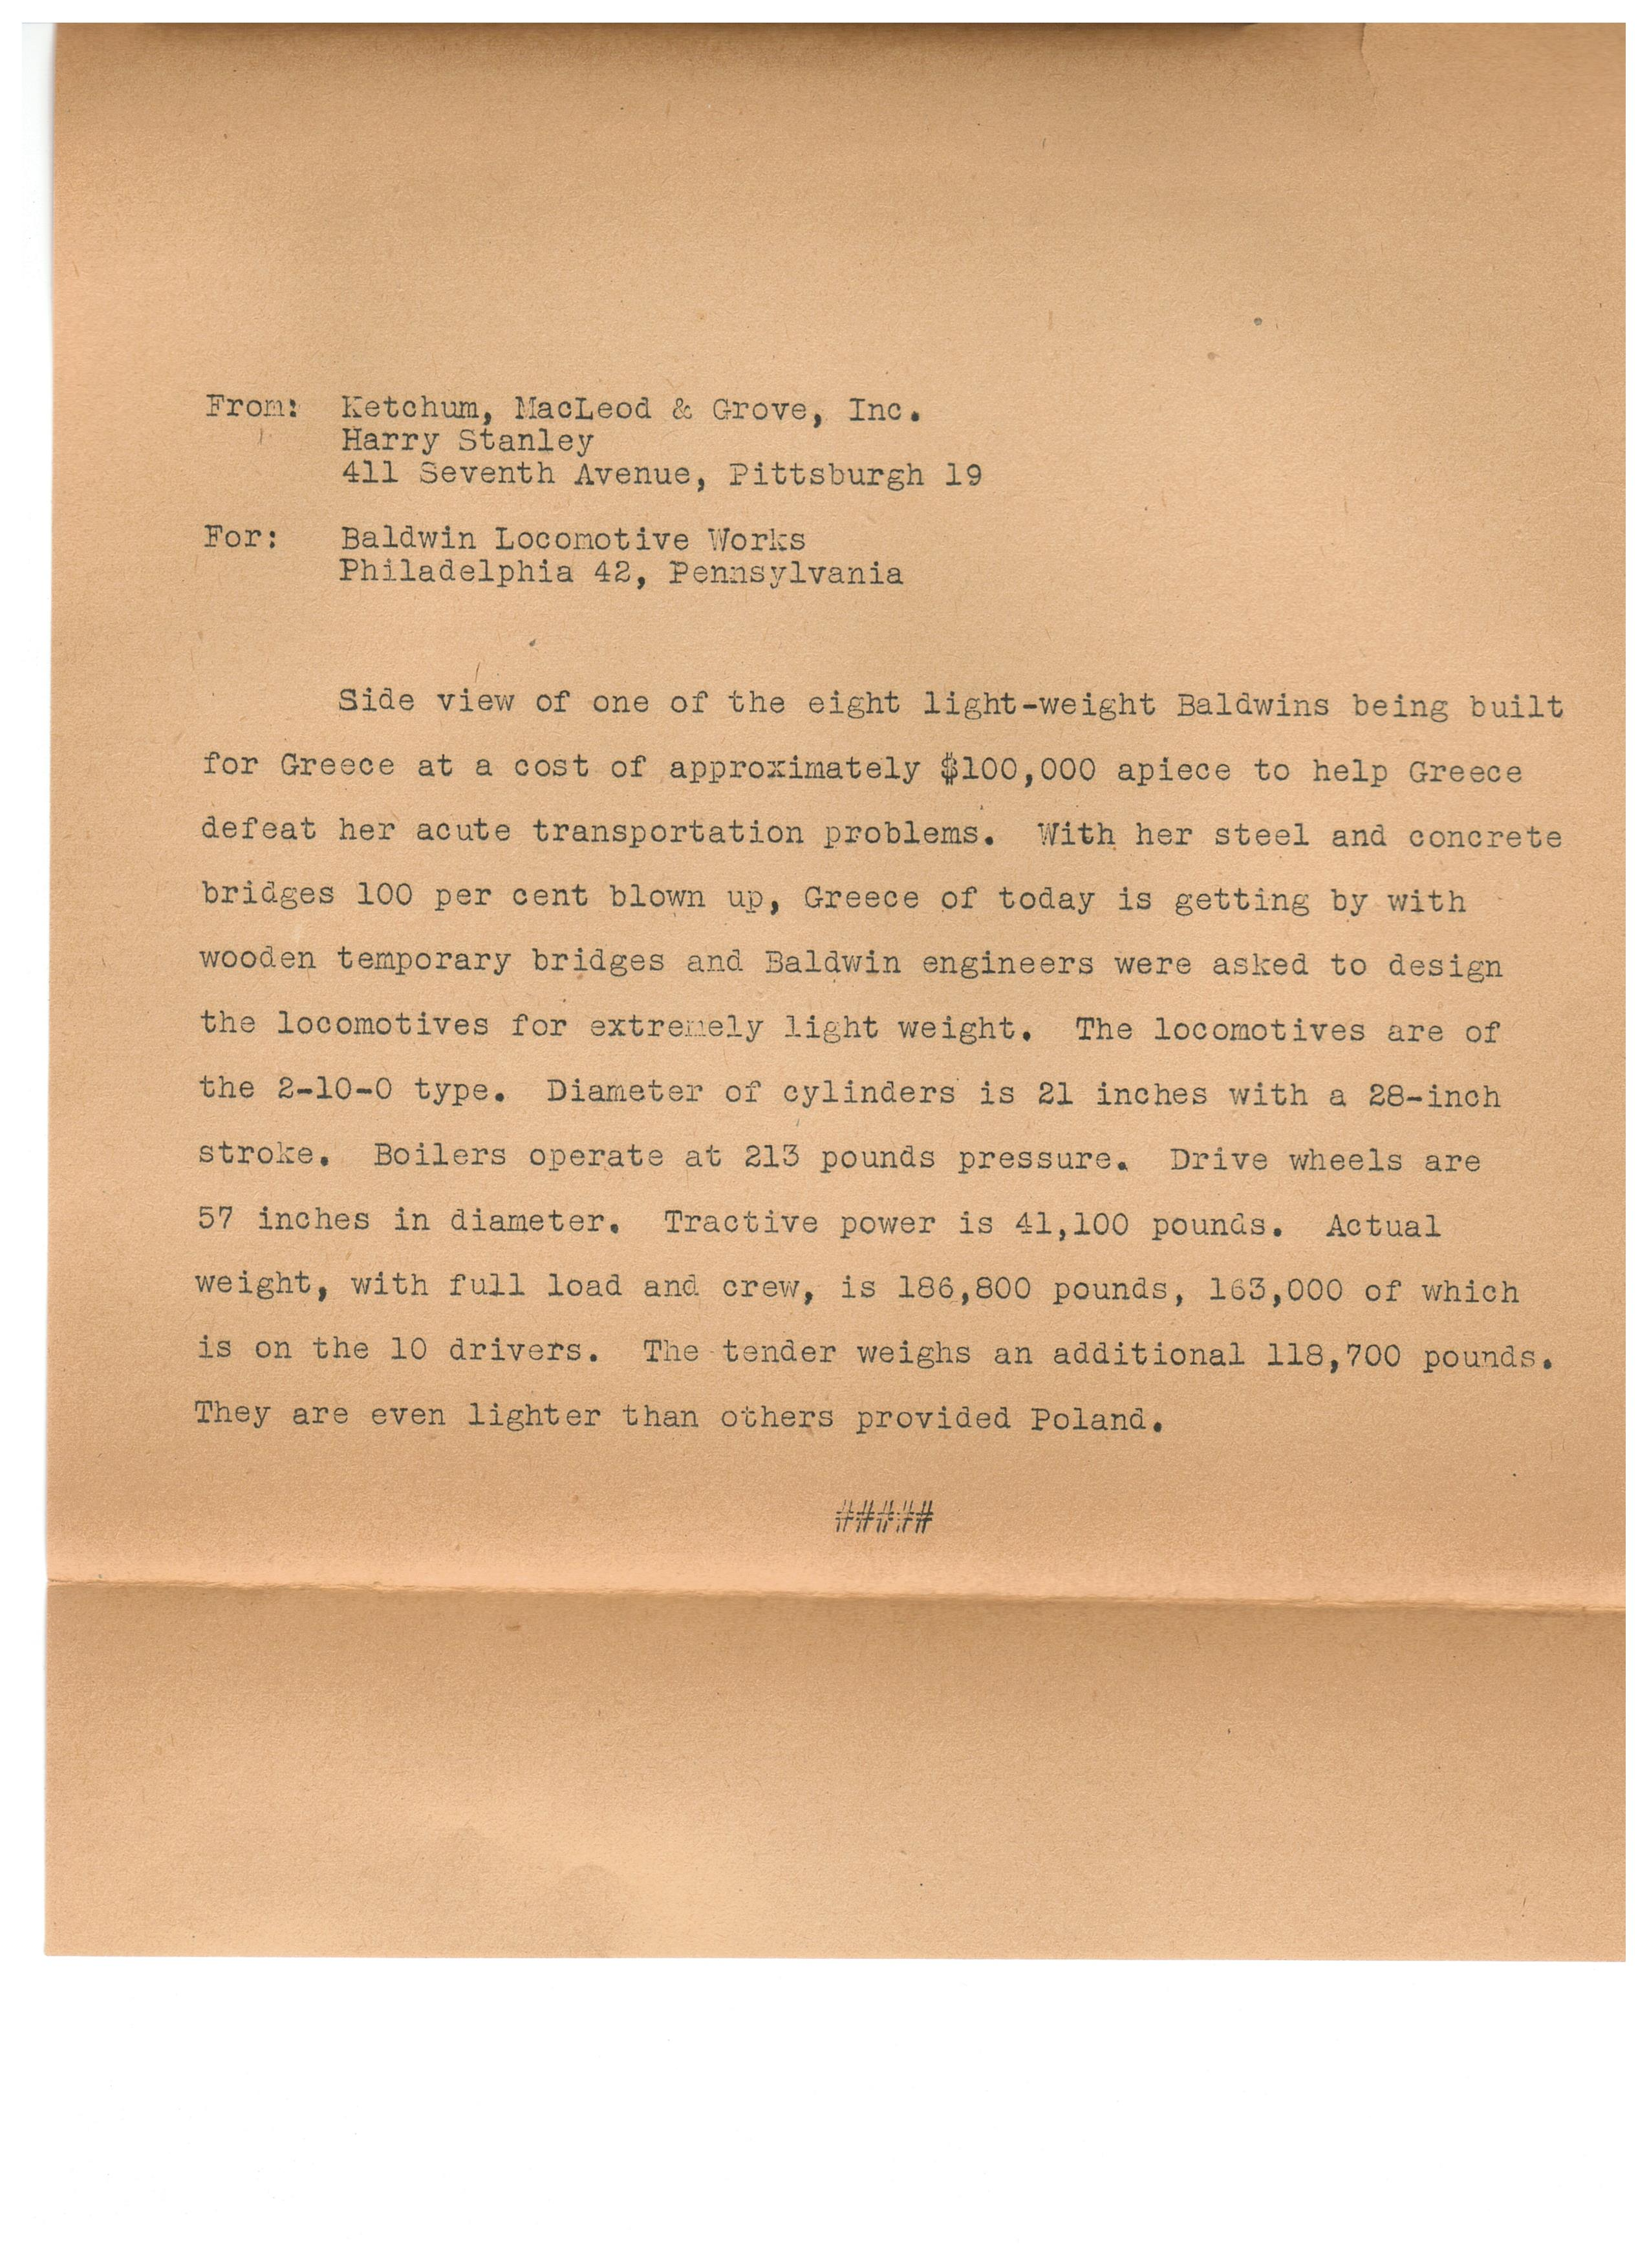 Image of a letter explaining the purpose of teh made - for Greece steamer.